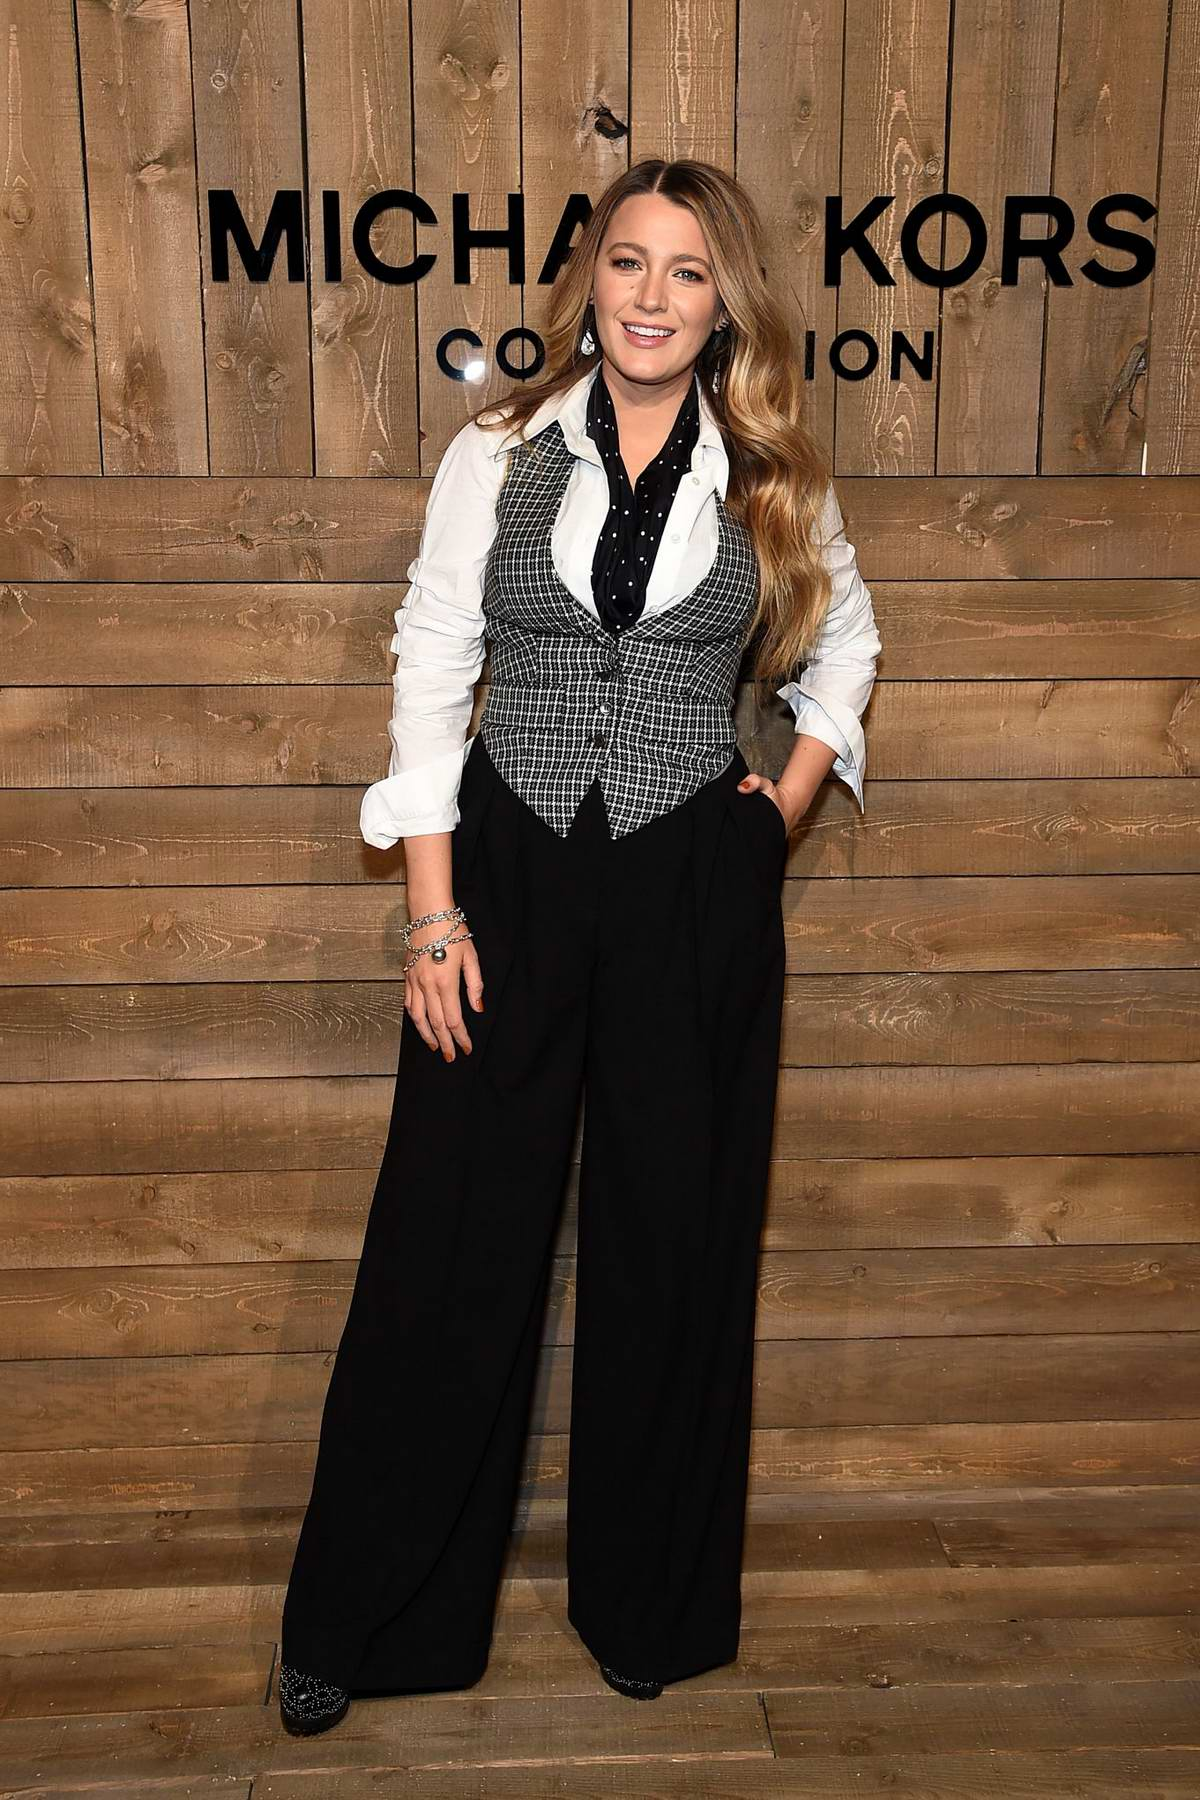 Blake Lively attends the Michael Kors show during NYFW 2020 in New York City